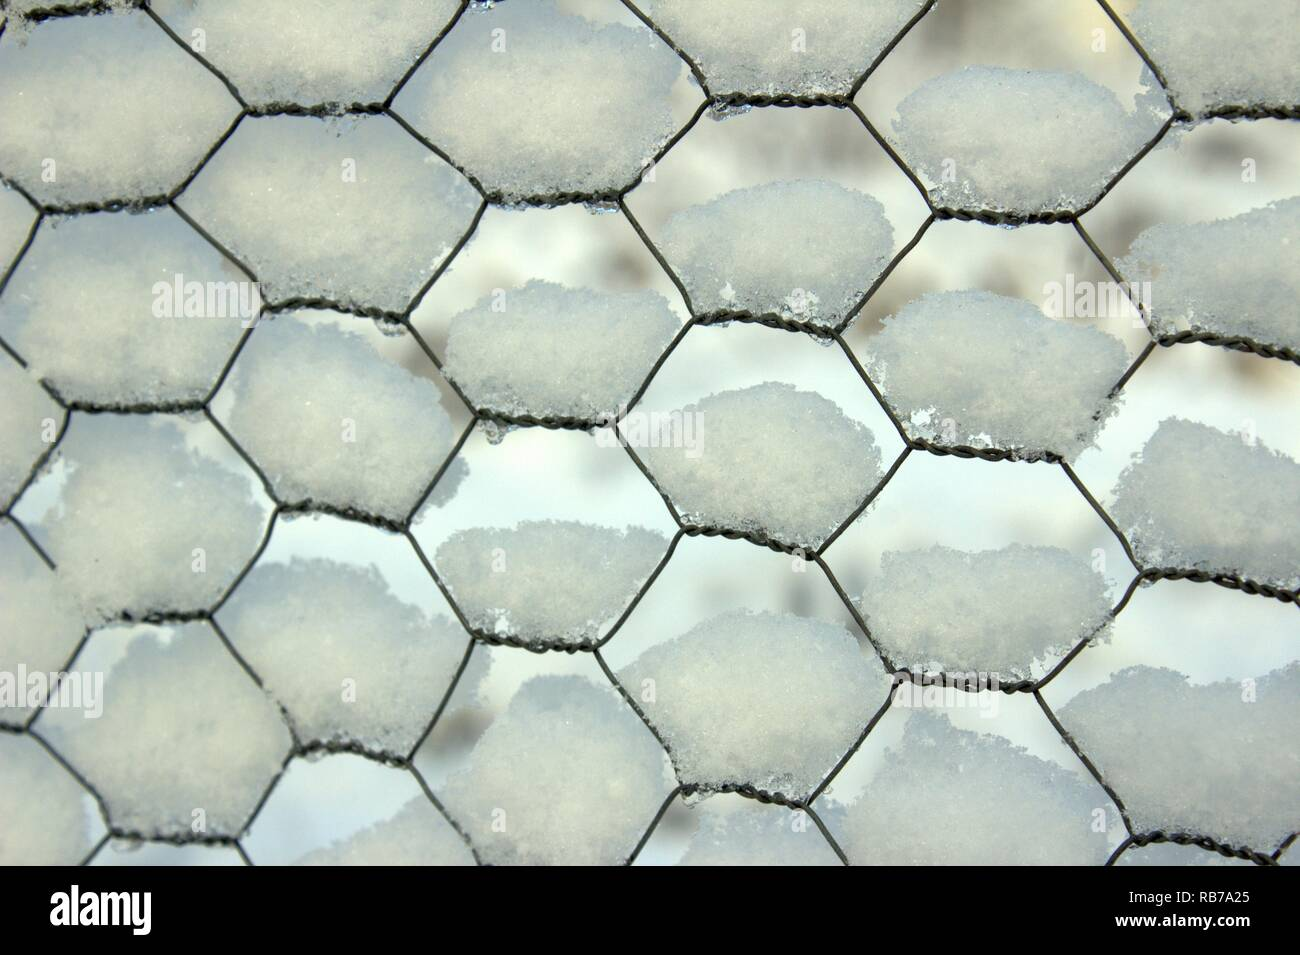 Snow On A Chicken Wire Fence In Winter - Stock Image